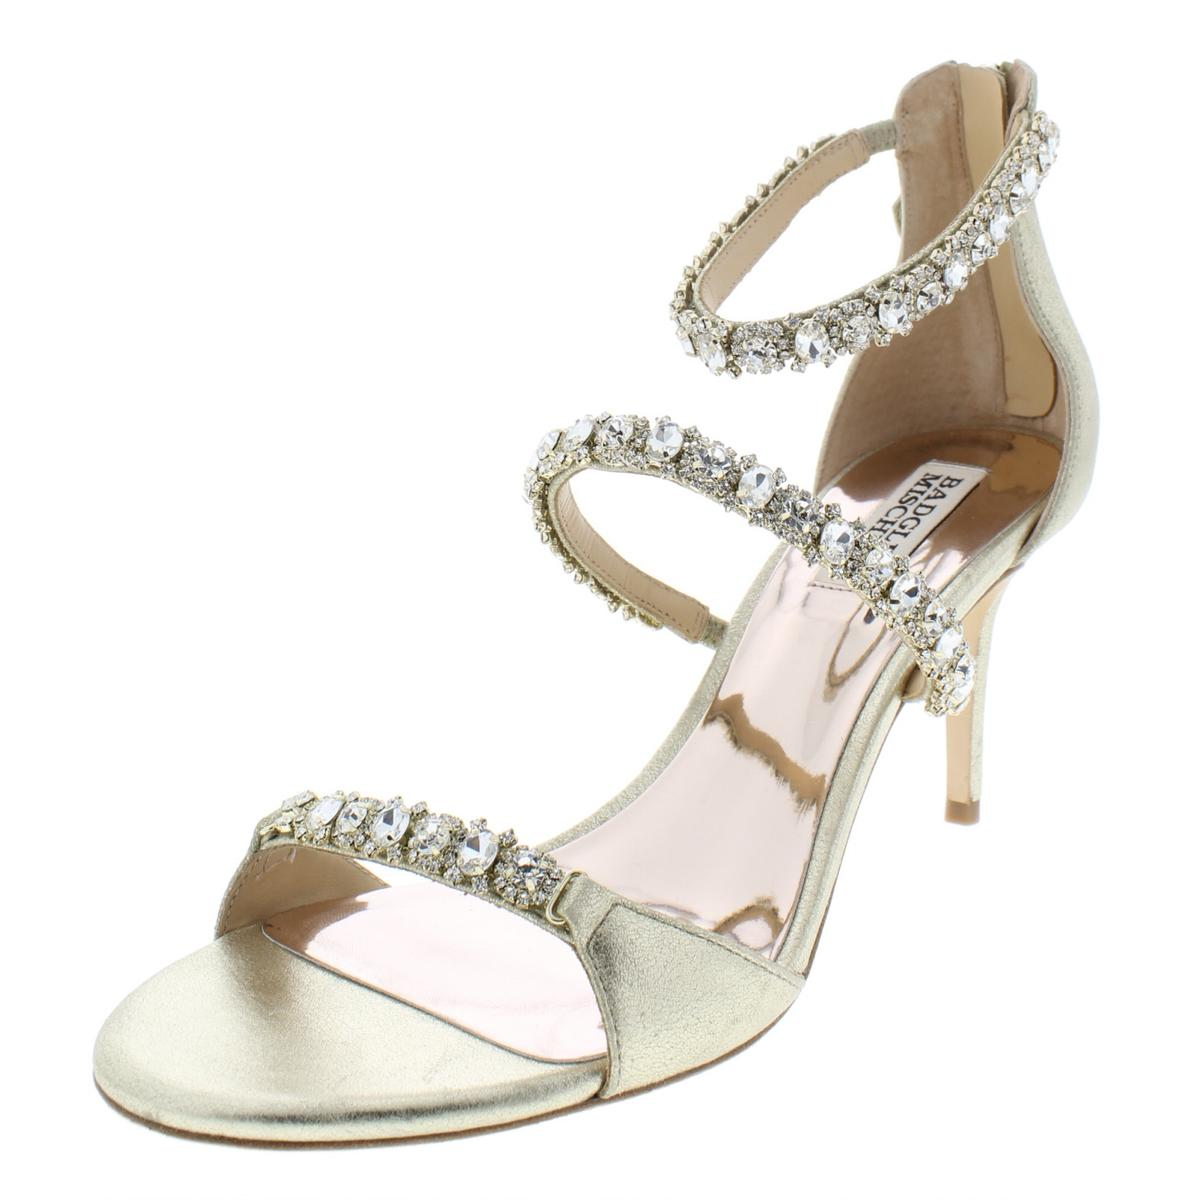 f4d84f7940c3 Details about Badgley Mischka Womens Yasmine Gold Evening Sandals 8.5  Medium (B